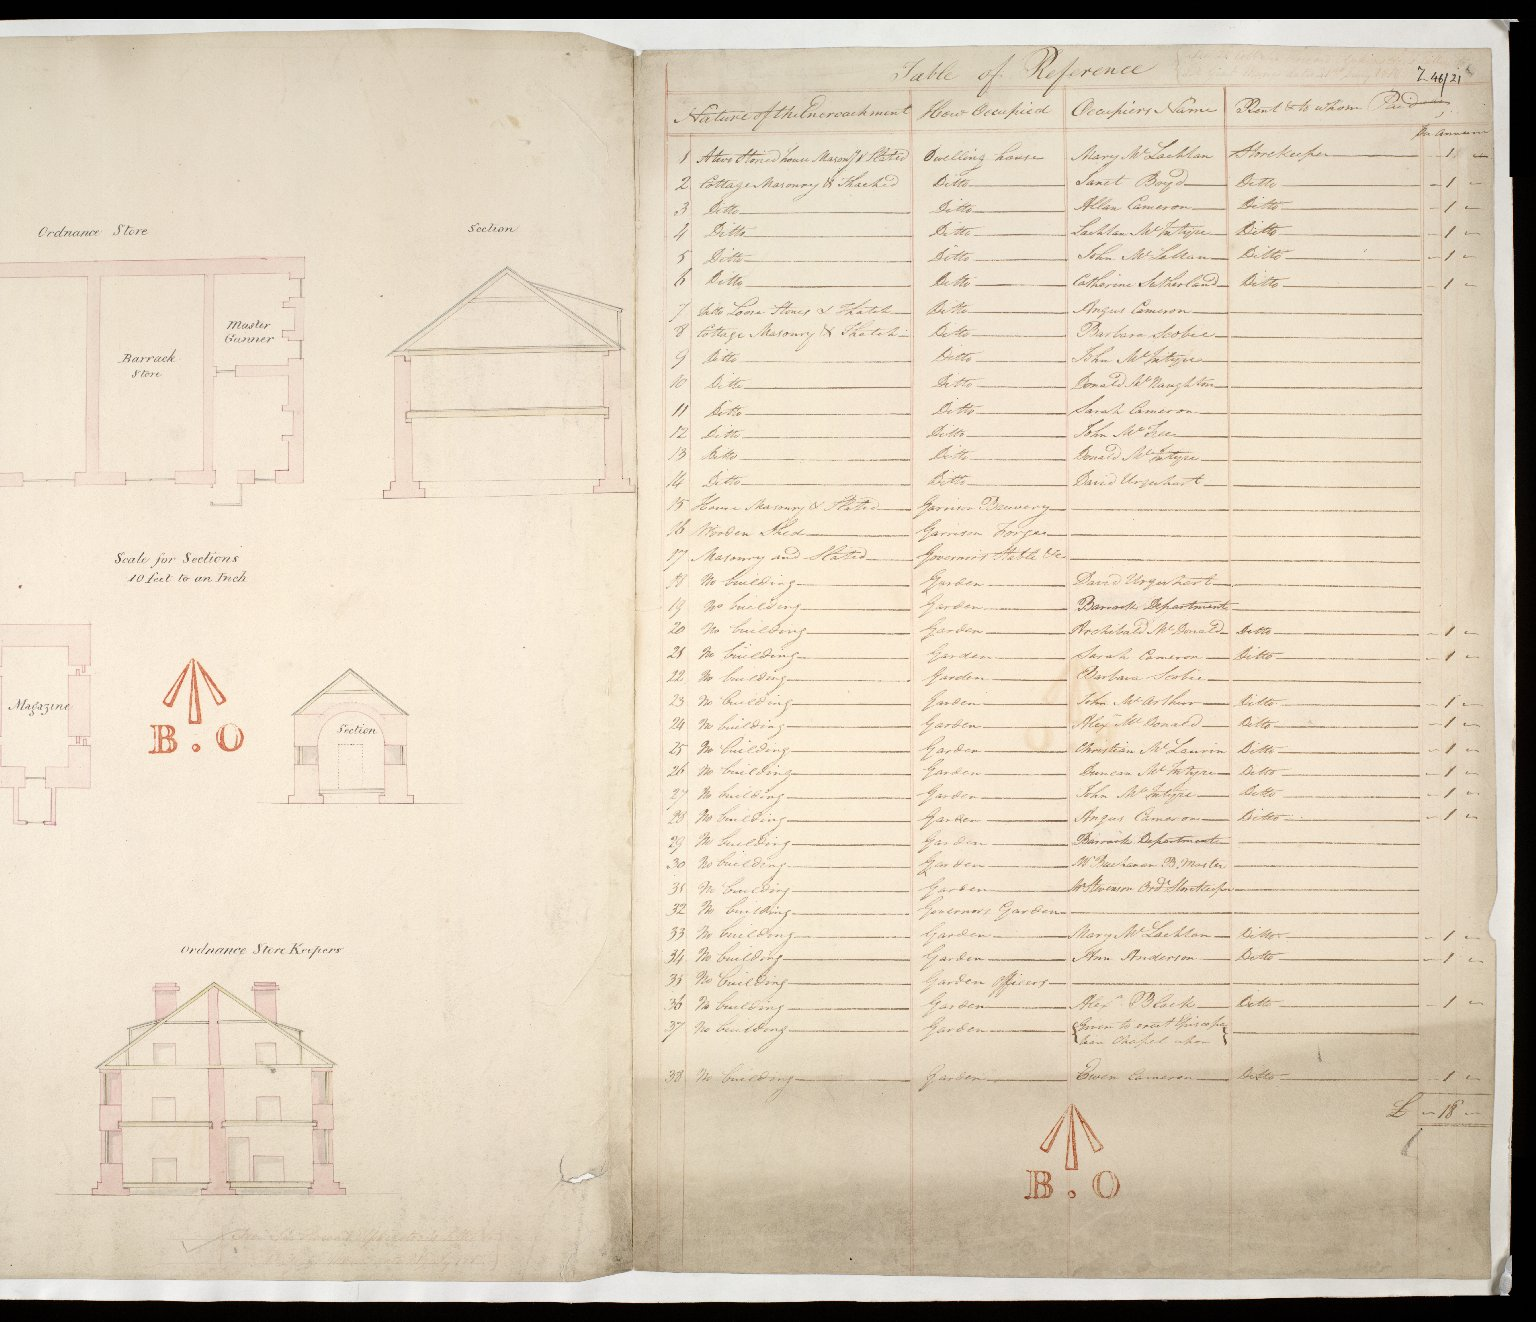 [Map of area around Fort William showing] boundary of the Crown lands : plans, elevations and sections of ordnance store and magazine; table of reference [showing] nature of the encroachment, how occupied, occupiers name, and rent & to whom paid [2 of 2]